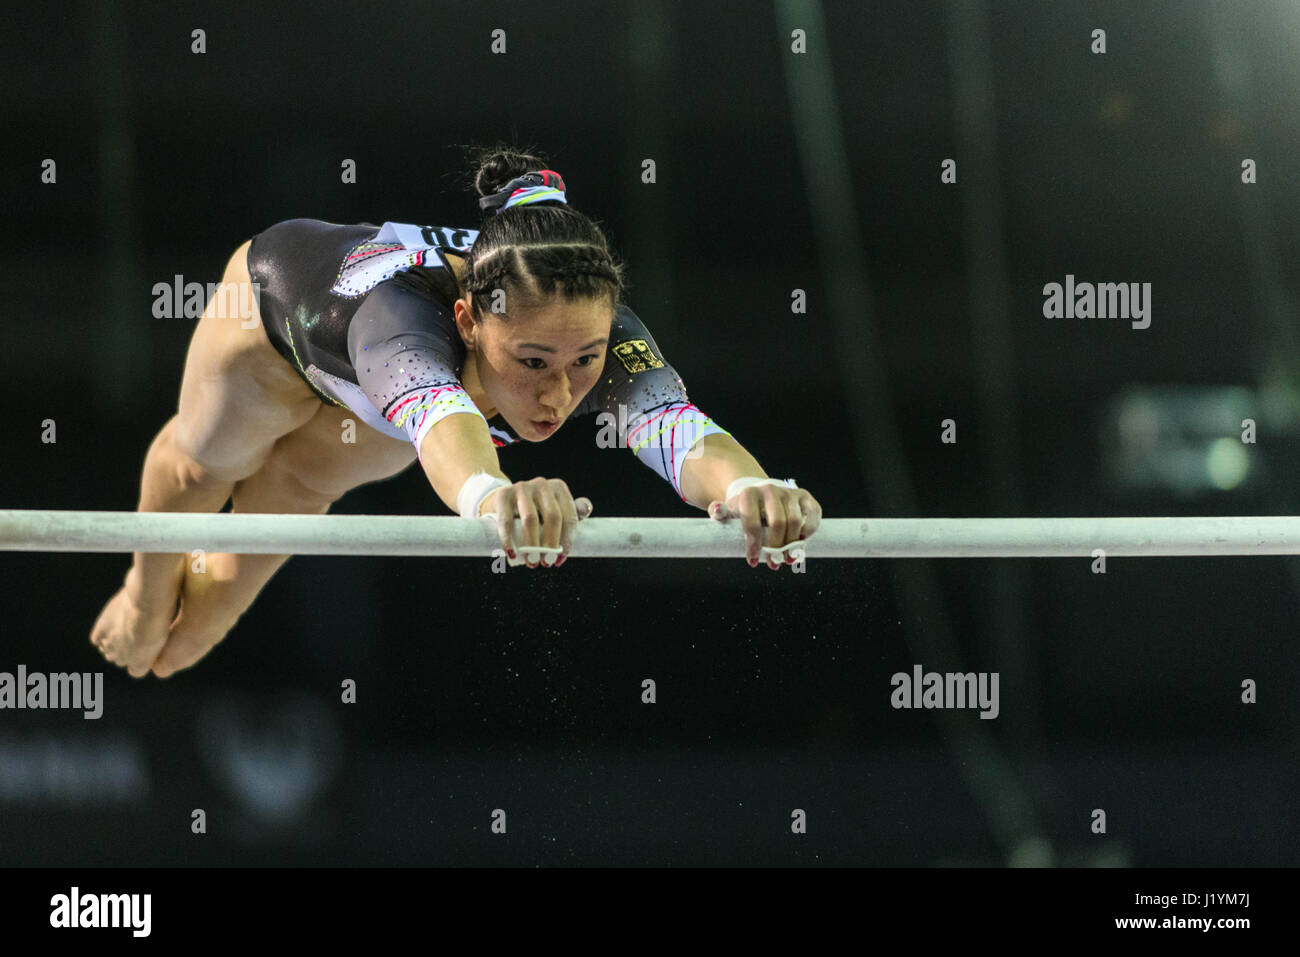 Cluj Napoca, Romania. 22nd Apr, 2017. Kim Bui from Germany competes at the asymmetrical bars at the UEG European Stock Photo